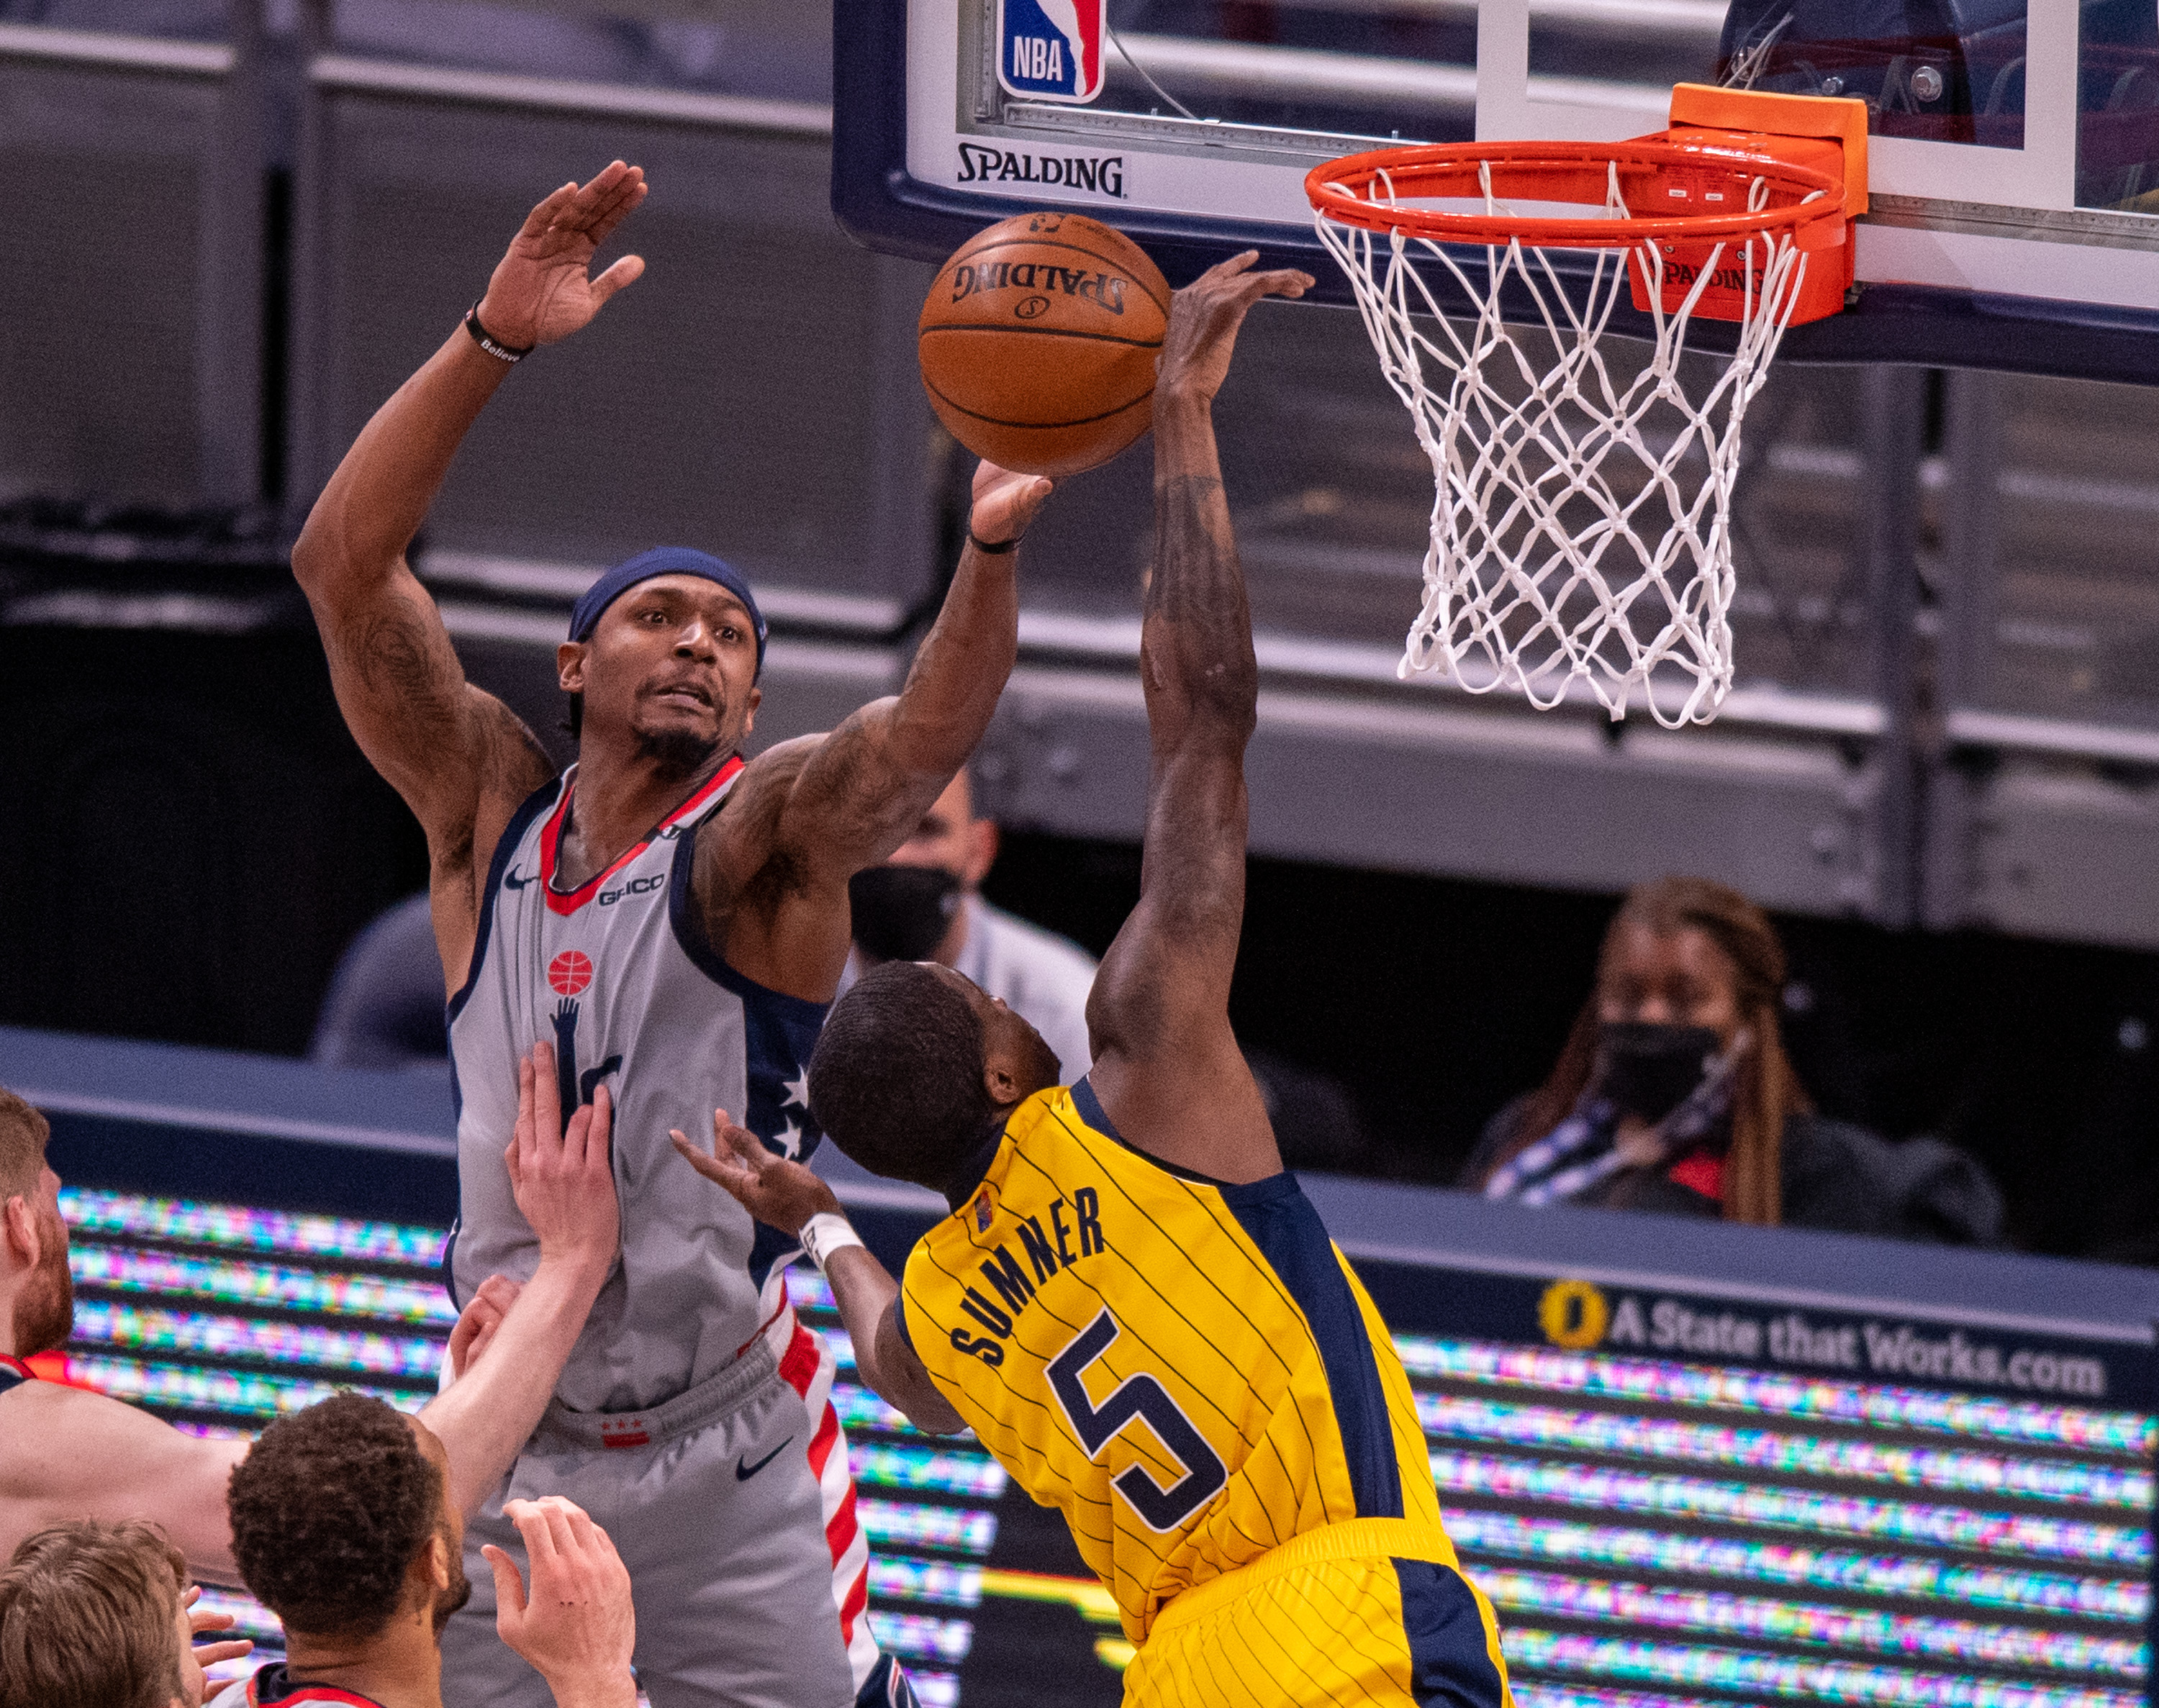 May 8, 2021; Indianapolis, Indiana, USA; Washington Wizards guard Bradley Beal (3) attempts to block a shot by Indiana Pacers guard Edmond Sumner (5) during the second half of an NBA basketball game at Bankers Life Fieldhouse. Mandatory Credit: Doug McSchooler-USA TODAY Sports